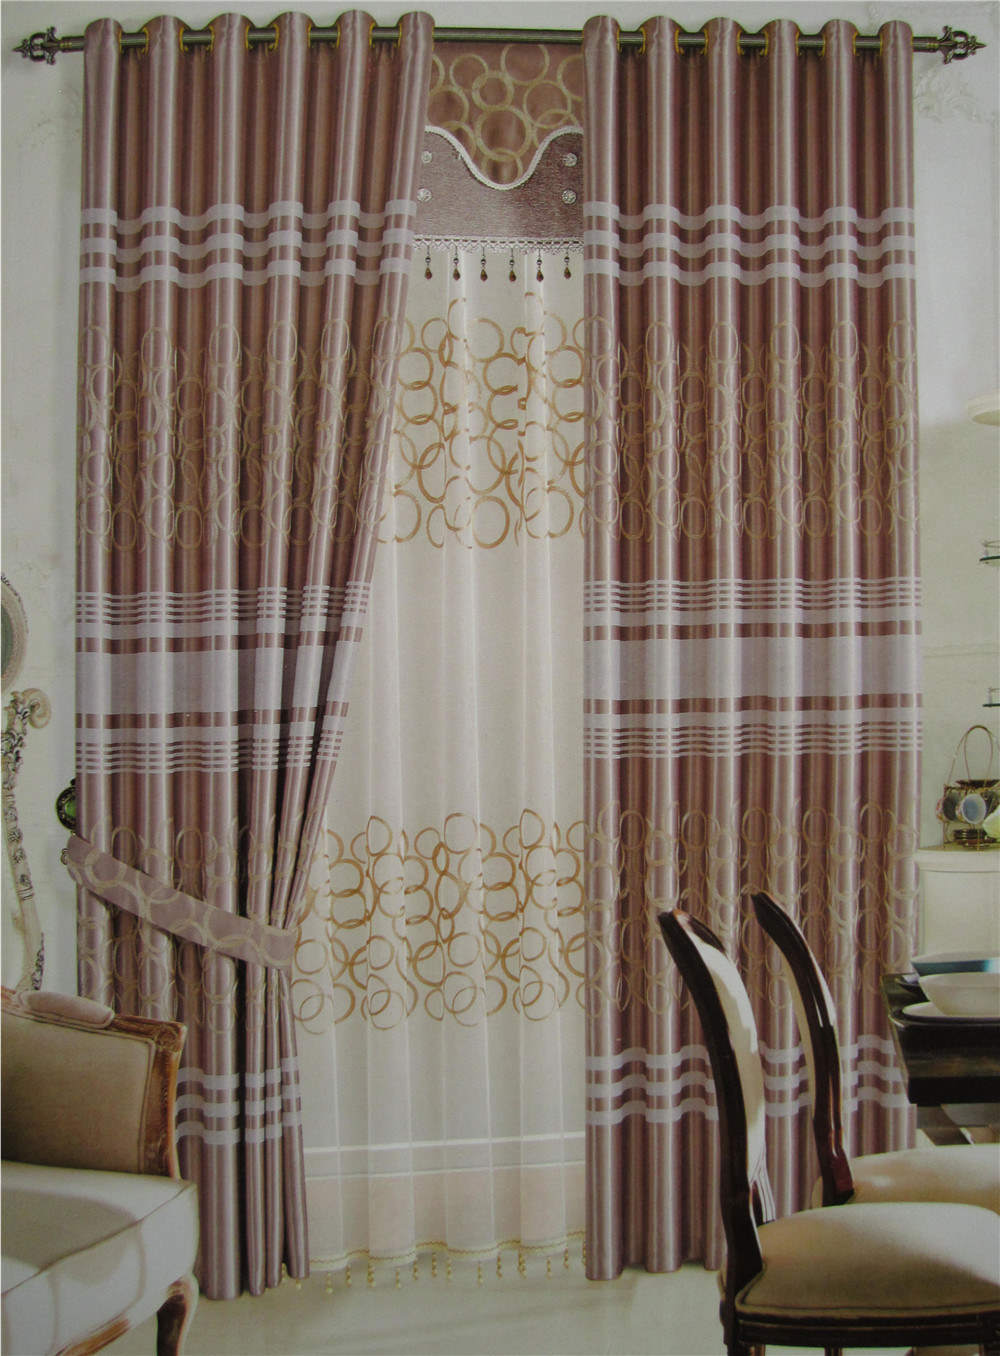 living room curtains bedroom curtains l00913501 curtain. Black Bedroom Furniture Sets. Home Design Ideas